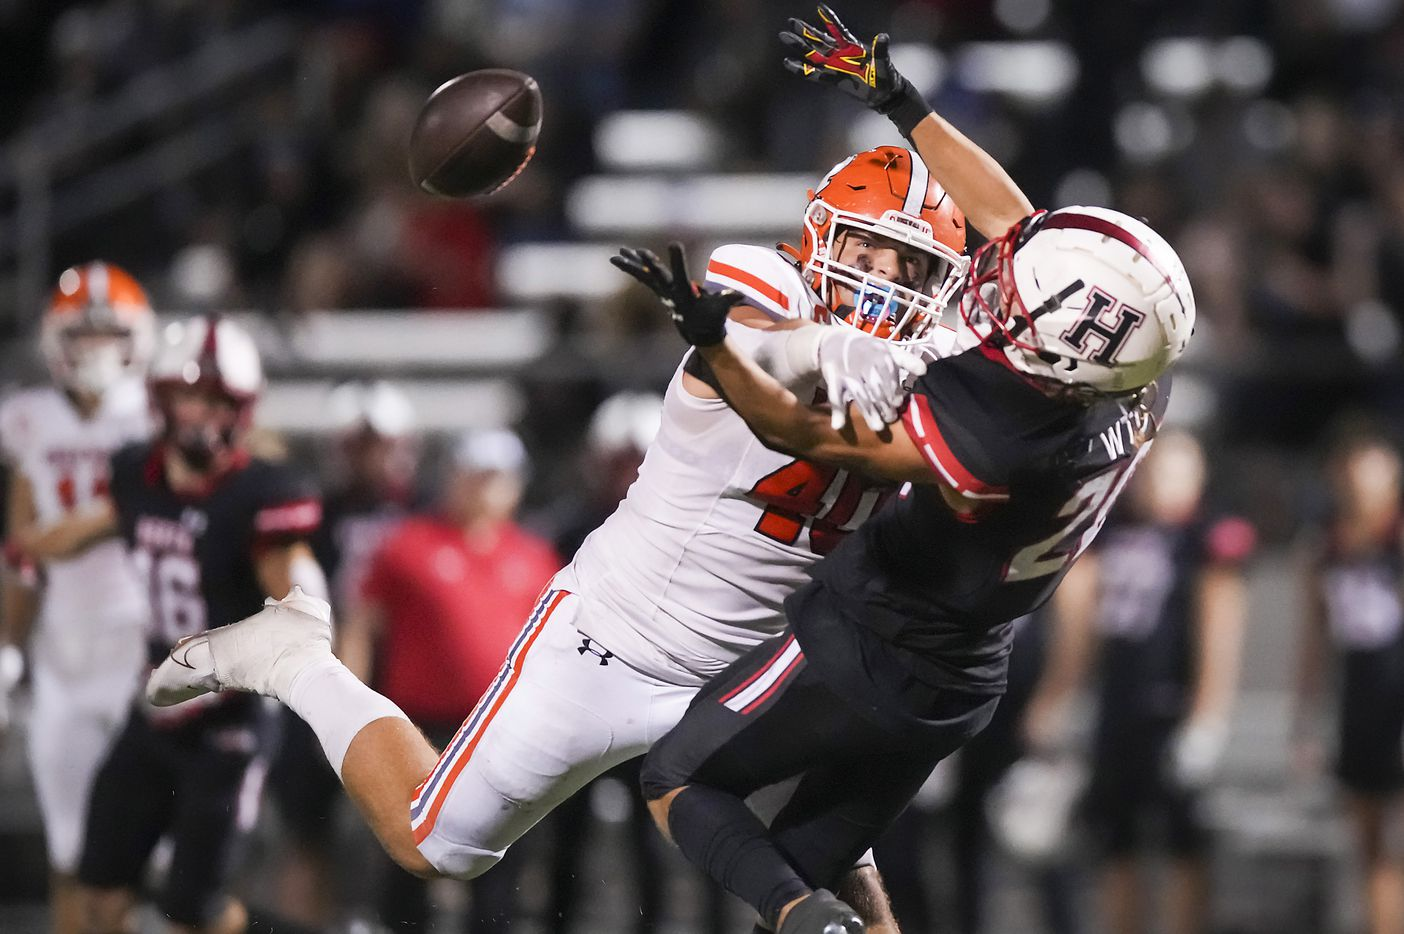 Heath defensive back Layne Horak (20) breaks up a pass intended for Rockwall tight end Brennan Ray (40) during the second half of a District 10-6A high school football game at Wilkerson-Sanders Stadium on Friday, Sept. 24, 2021, in Rockwall.  Rockwall-Heath won the game 79-71 in double overtime.